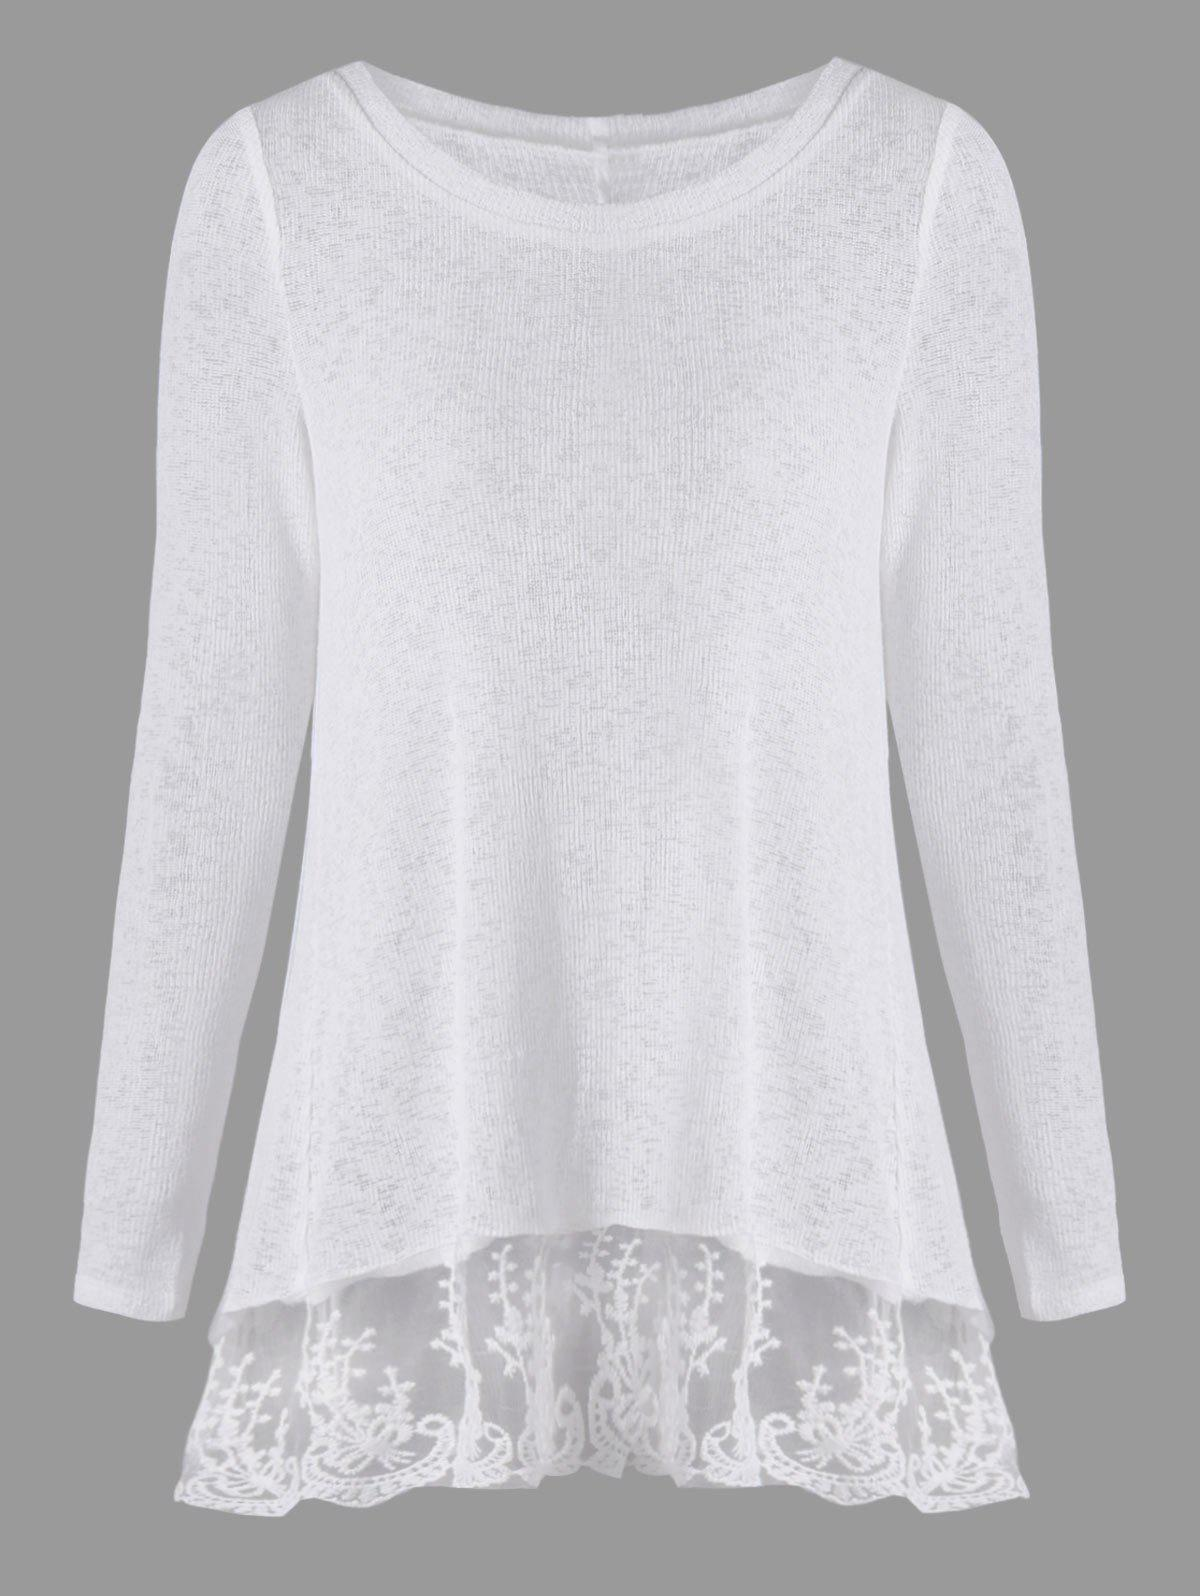 Back Bowknot Lace Panel Long Sleeve Knit Top - WHITE M